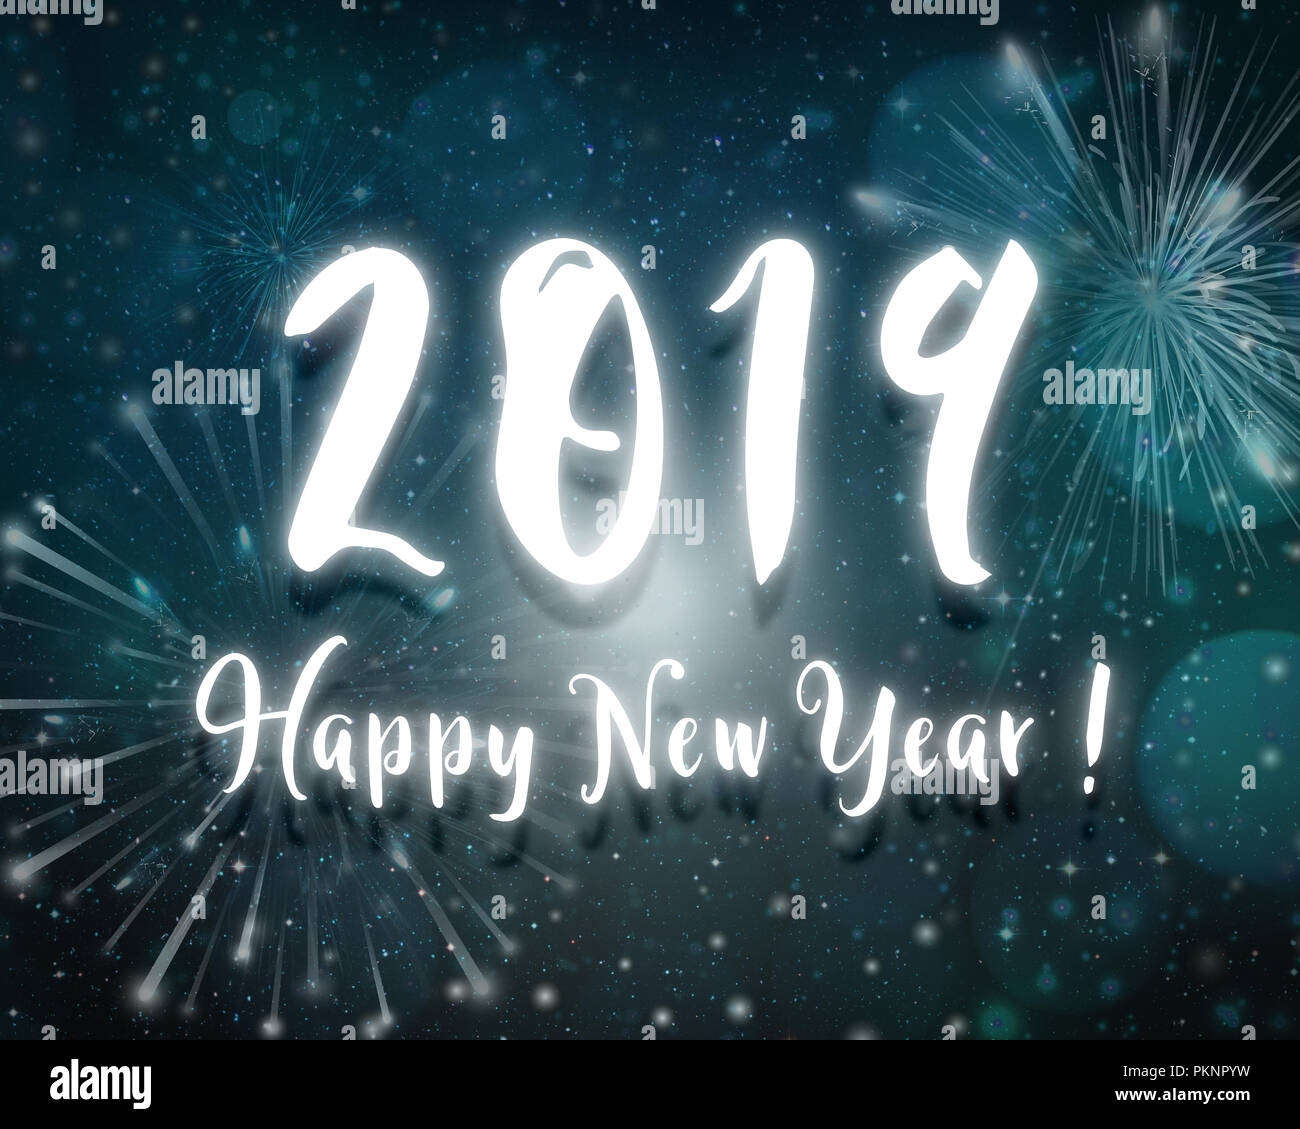 2019 happy new year text blue night background with fireworks in sky with stars